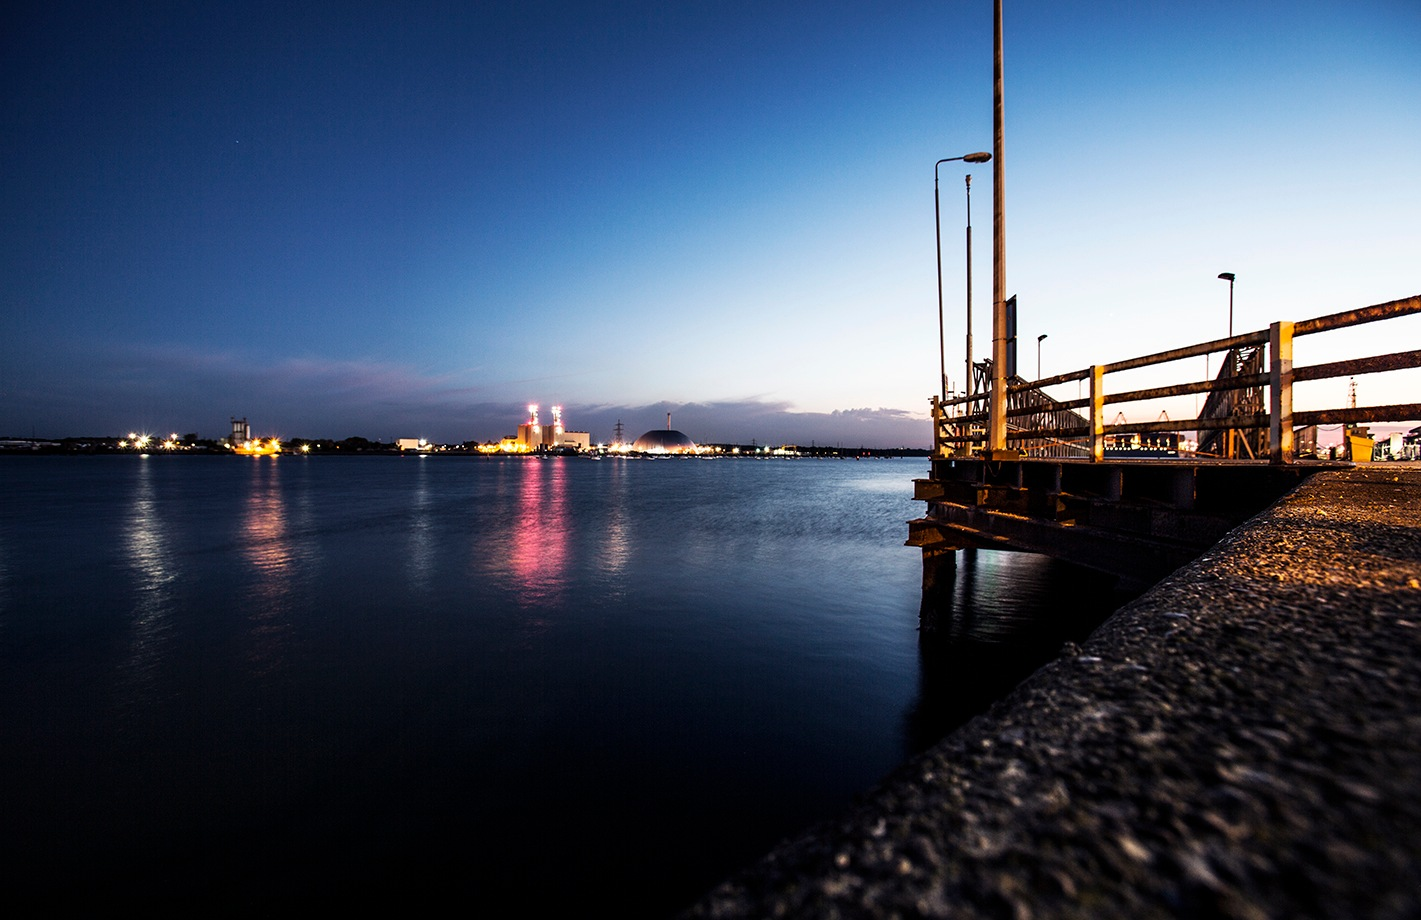 The docks  by Ben Donnison